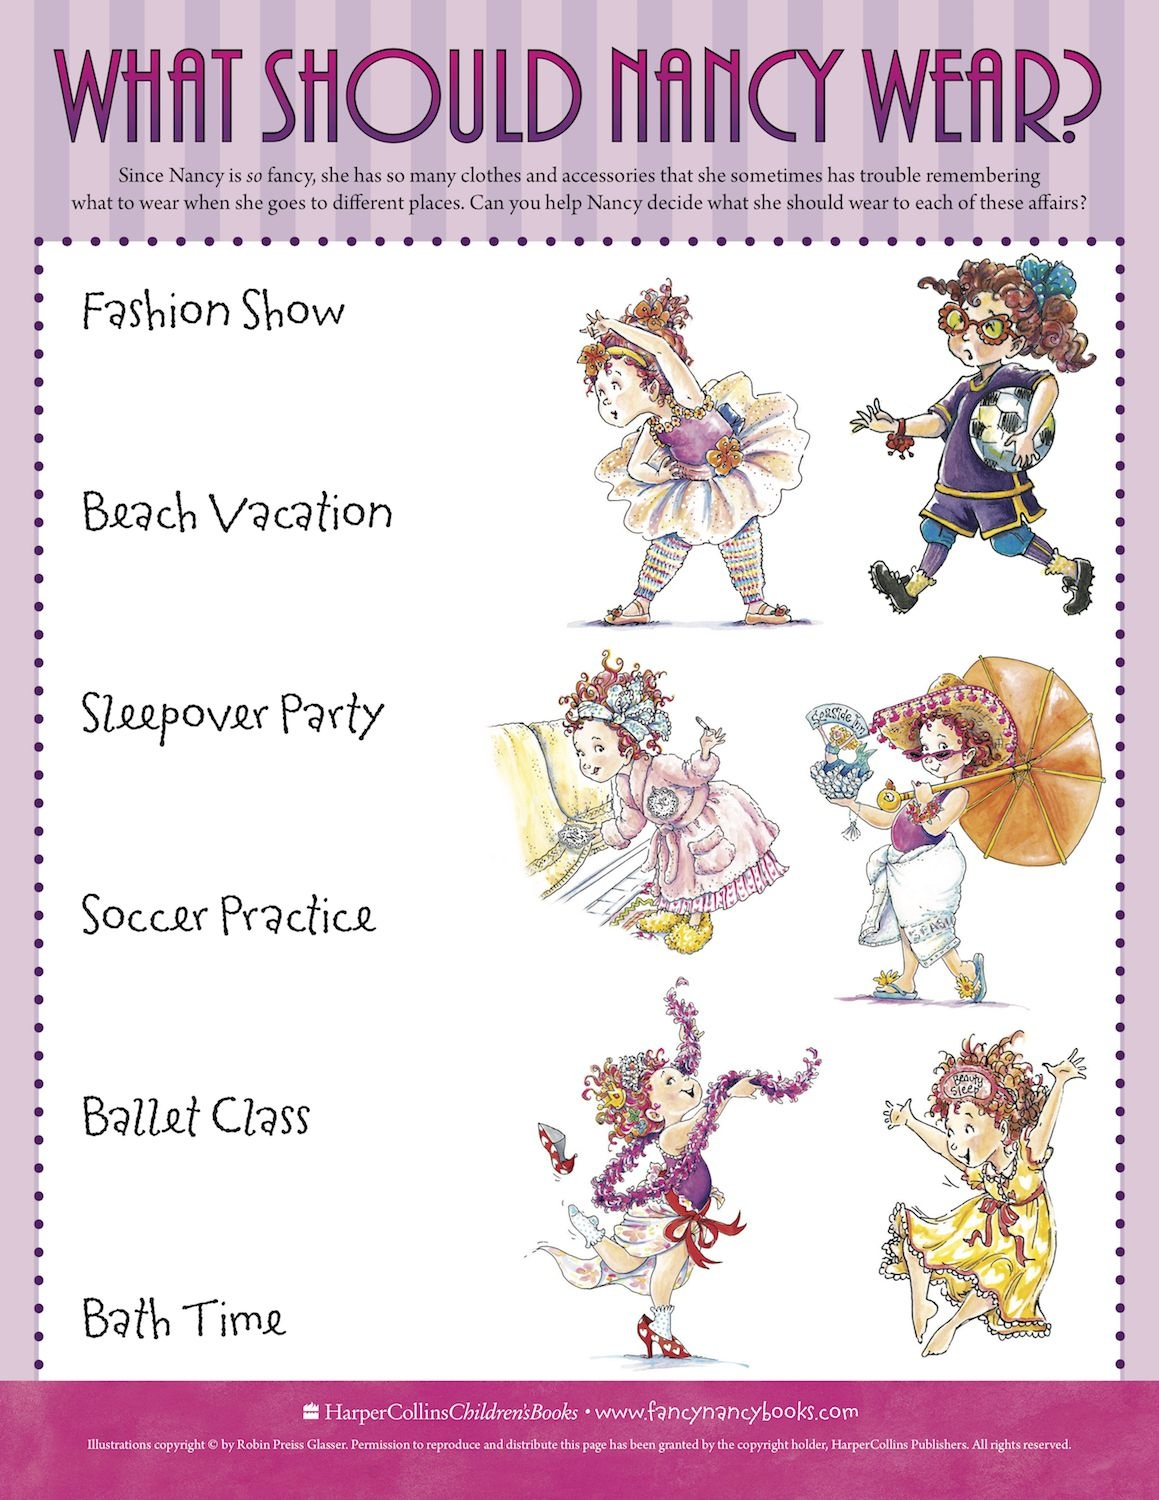 Match Fancy Nancy's Outfit To The Event With This Fun Free Printable - Free Printable Tea Party Games